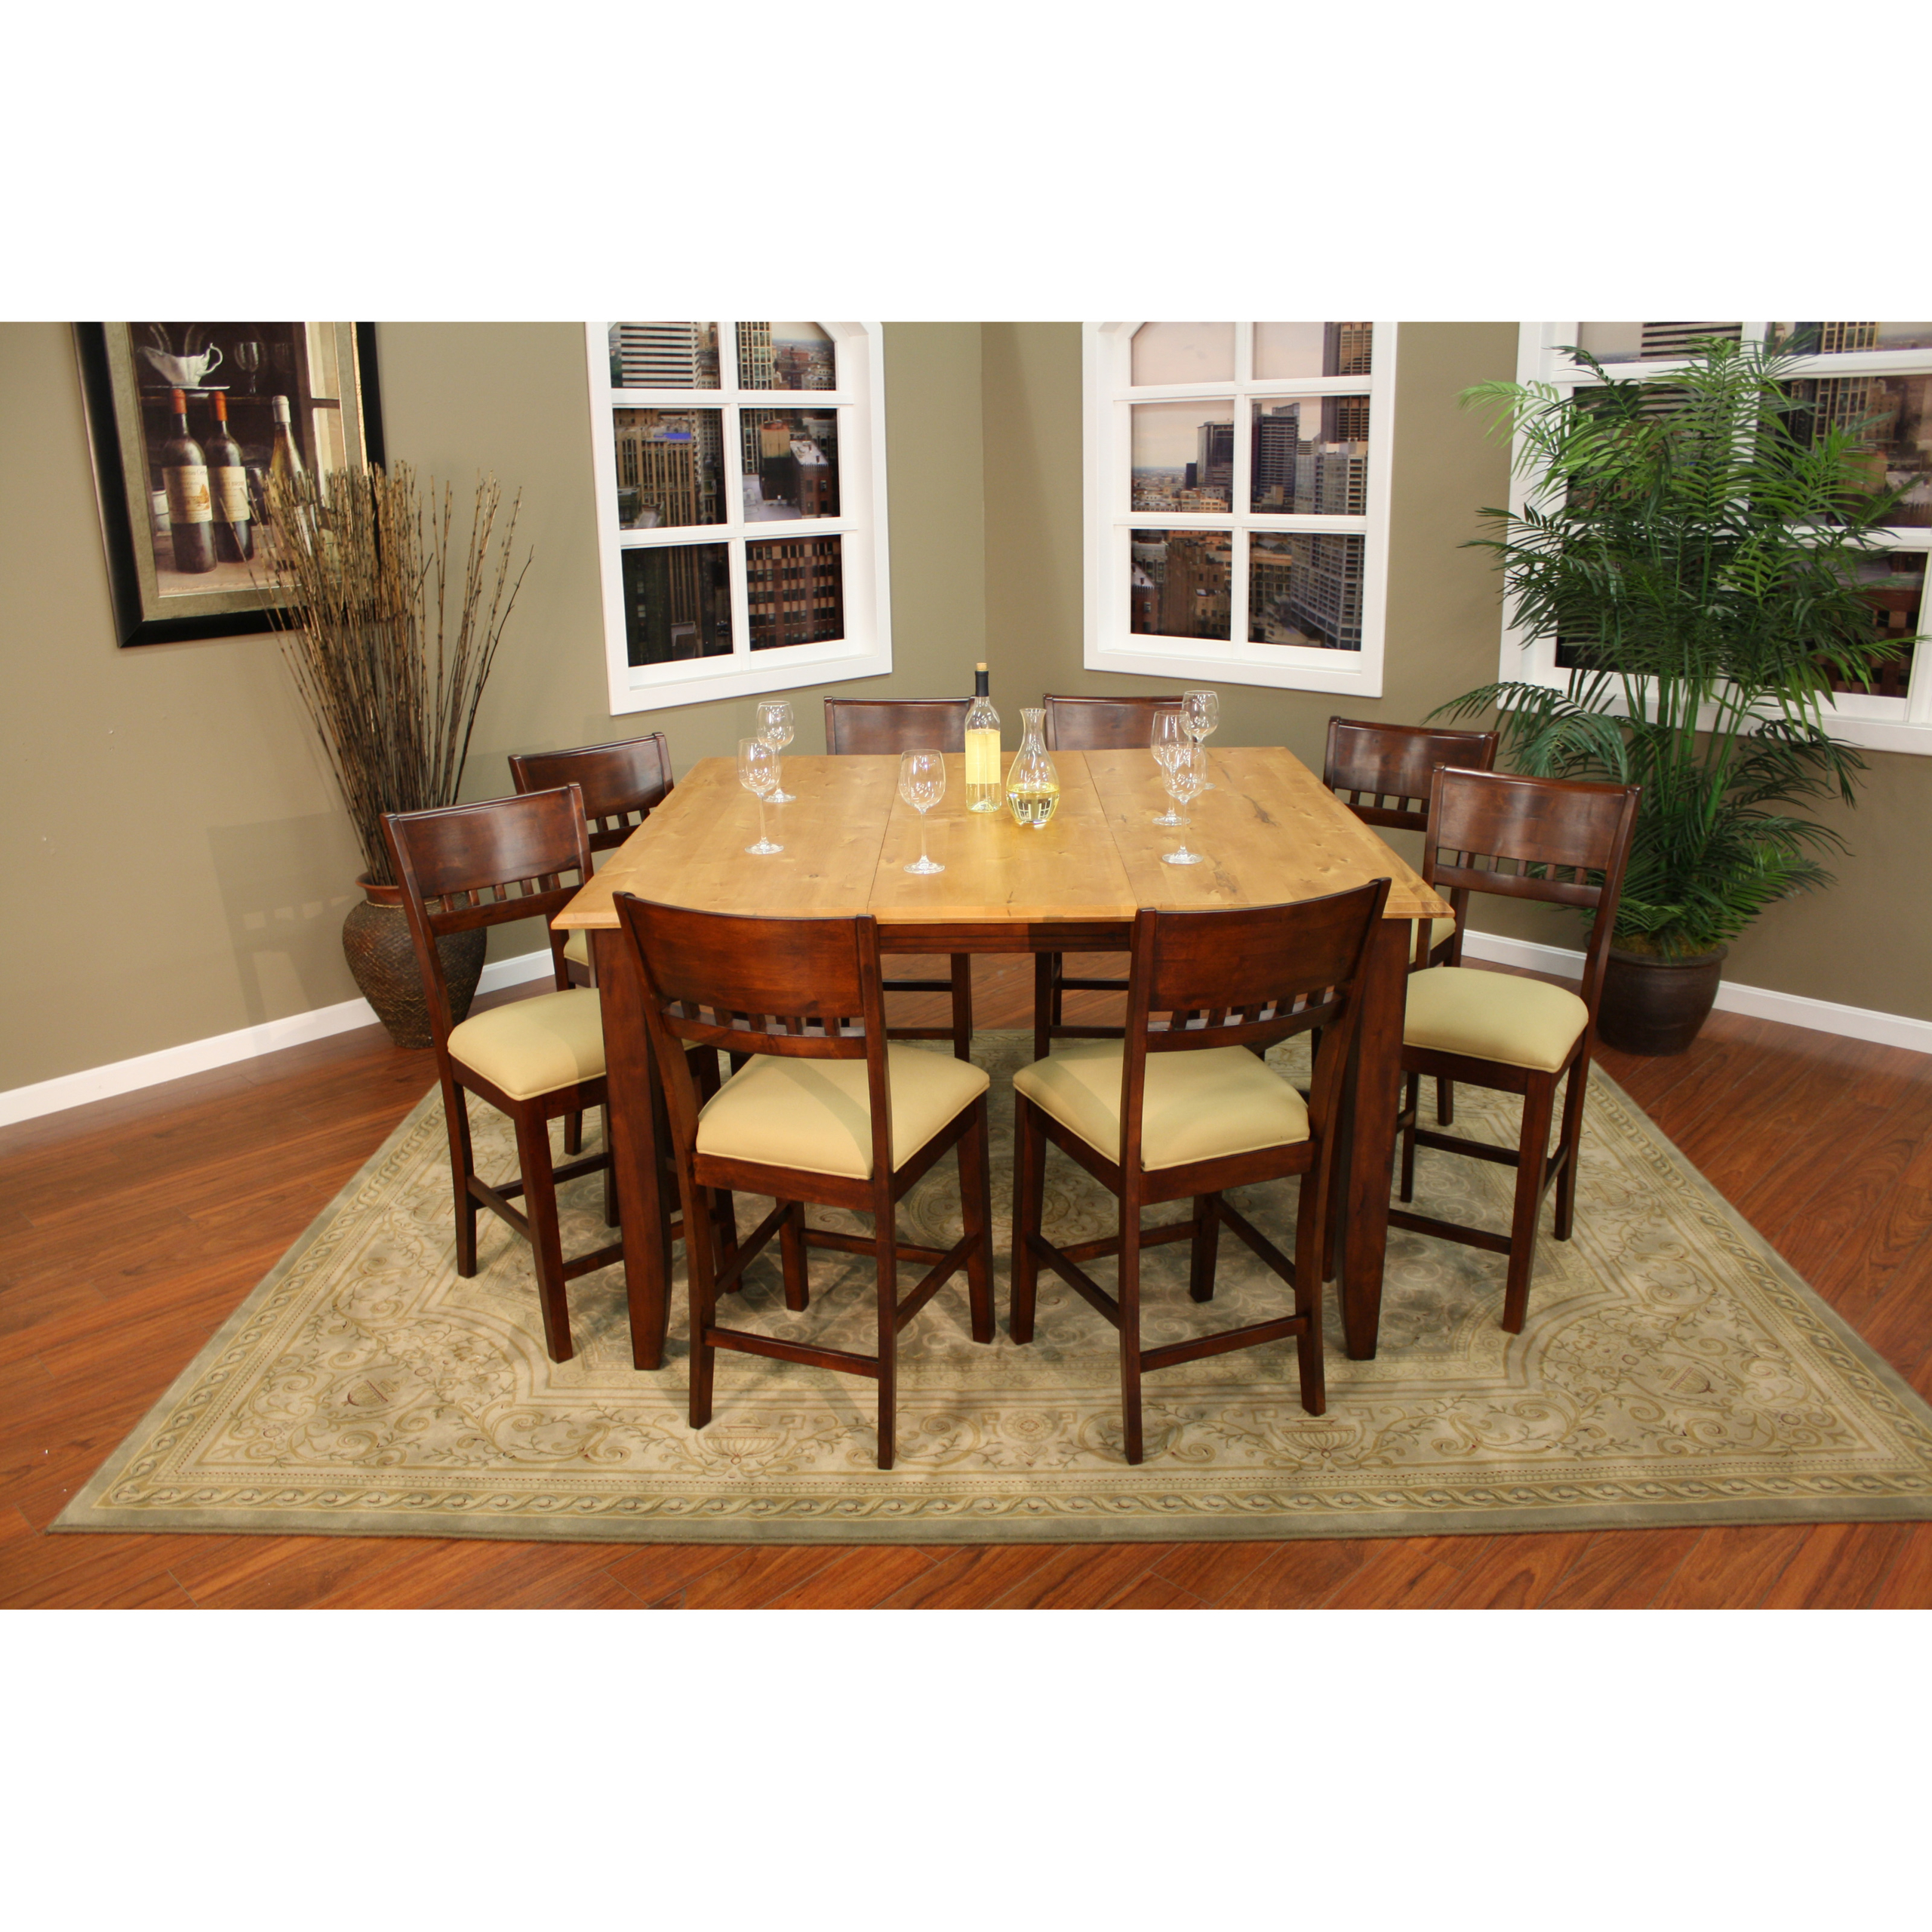 Marvelous Light Wood Counter Height Dining Sets 5